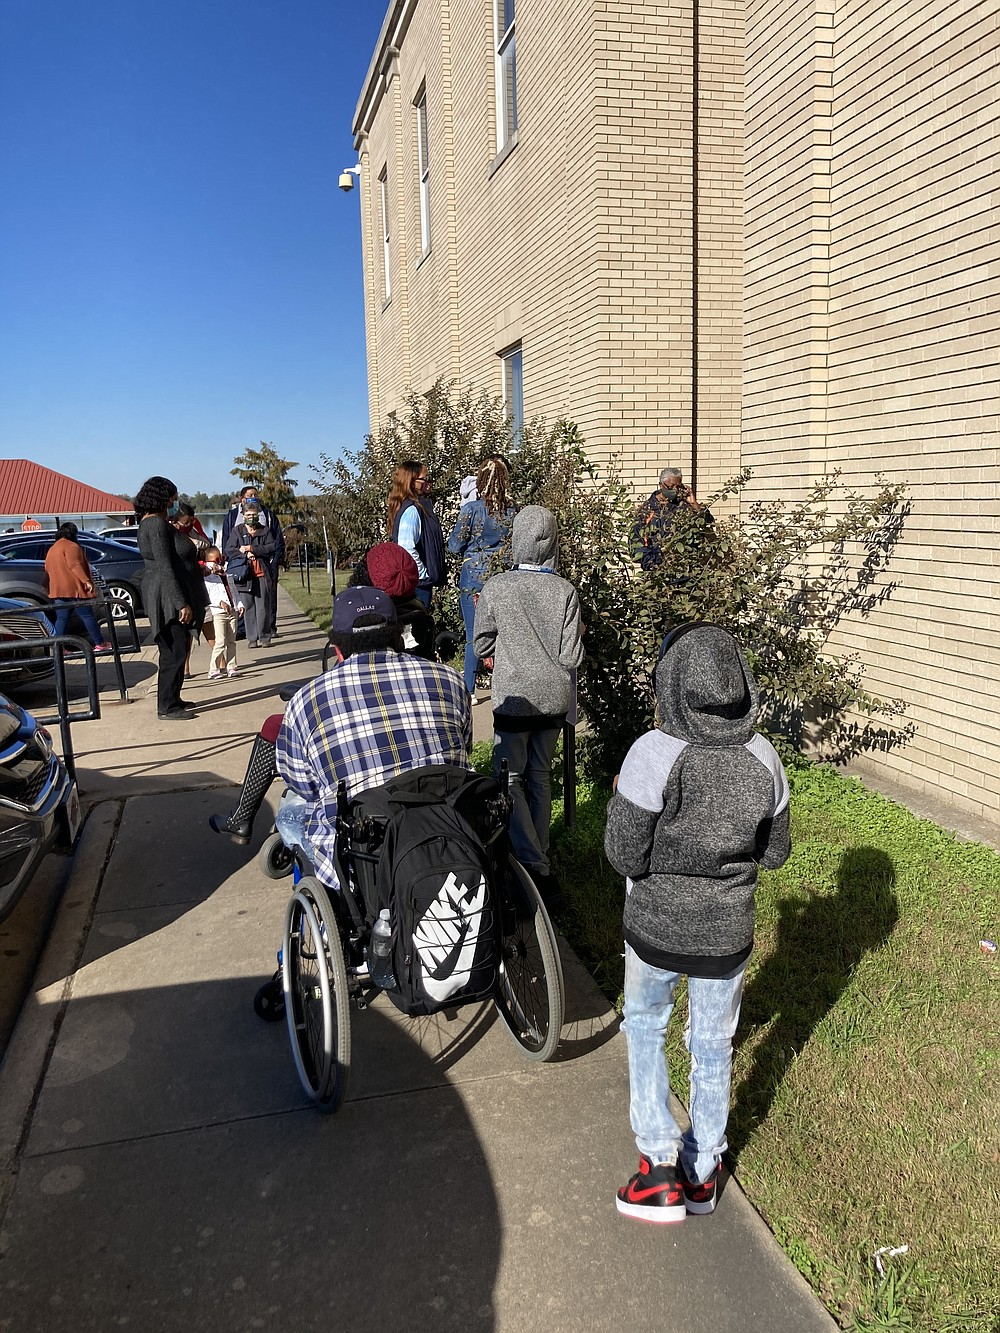 Voters stood in line on Monday to take advantage of the last day of early voting ahead of the General Election today. (Pine Bluff Commercial/Byron Tate)